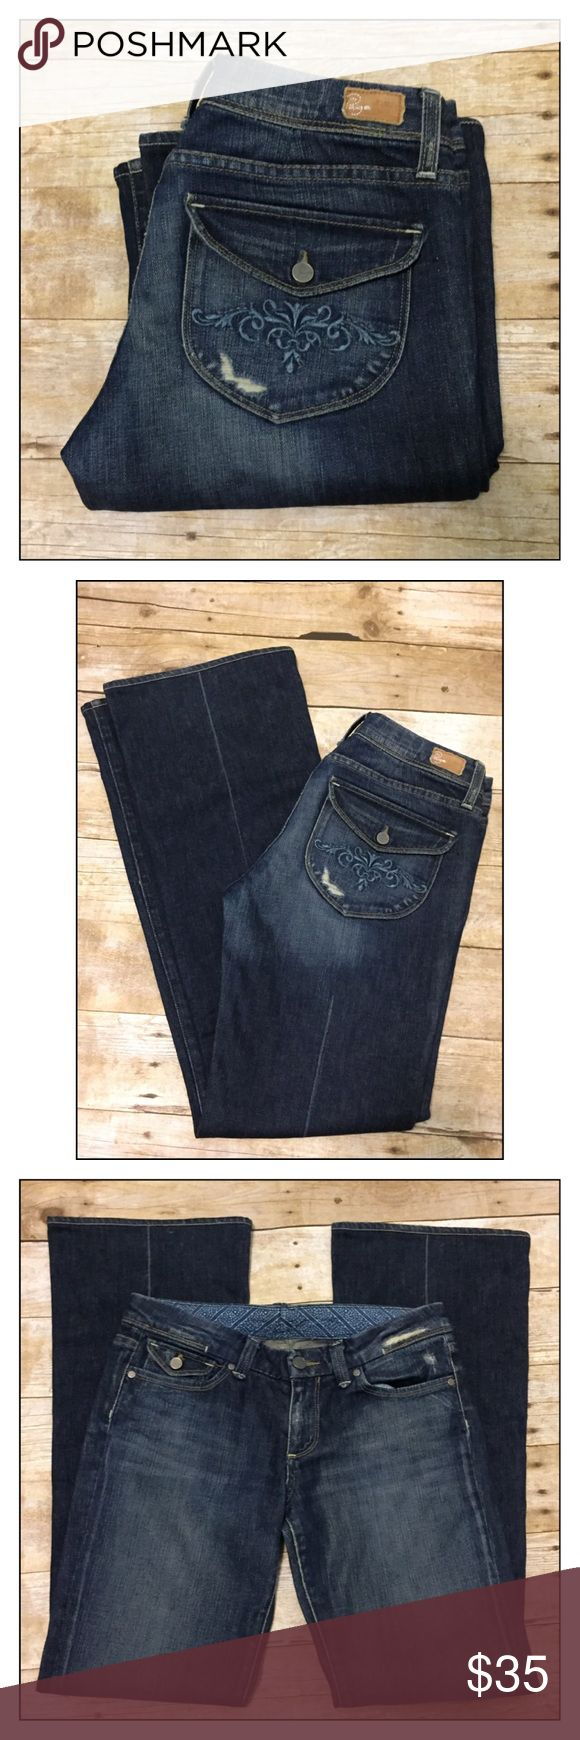 ❤️ Paige Pico Bootcut Jeans ❤️ SALE ❤️ ❤️ Paige Pico Bootcut Jeans ❤️ size 29x33.5 waist measures at 16 inches. These have a beautiful detail on rear pockets and factory distress. Don't miss out on these GORGEOUS Pair of jeans!!!❤️ Paige Jeans Jeans Boot Cut